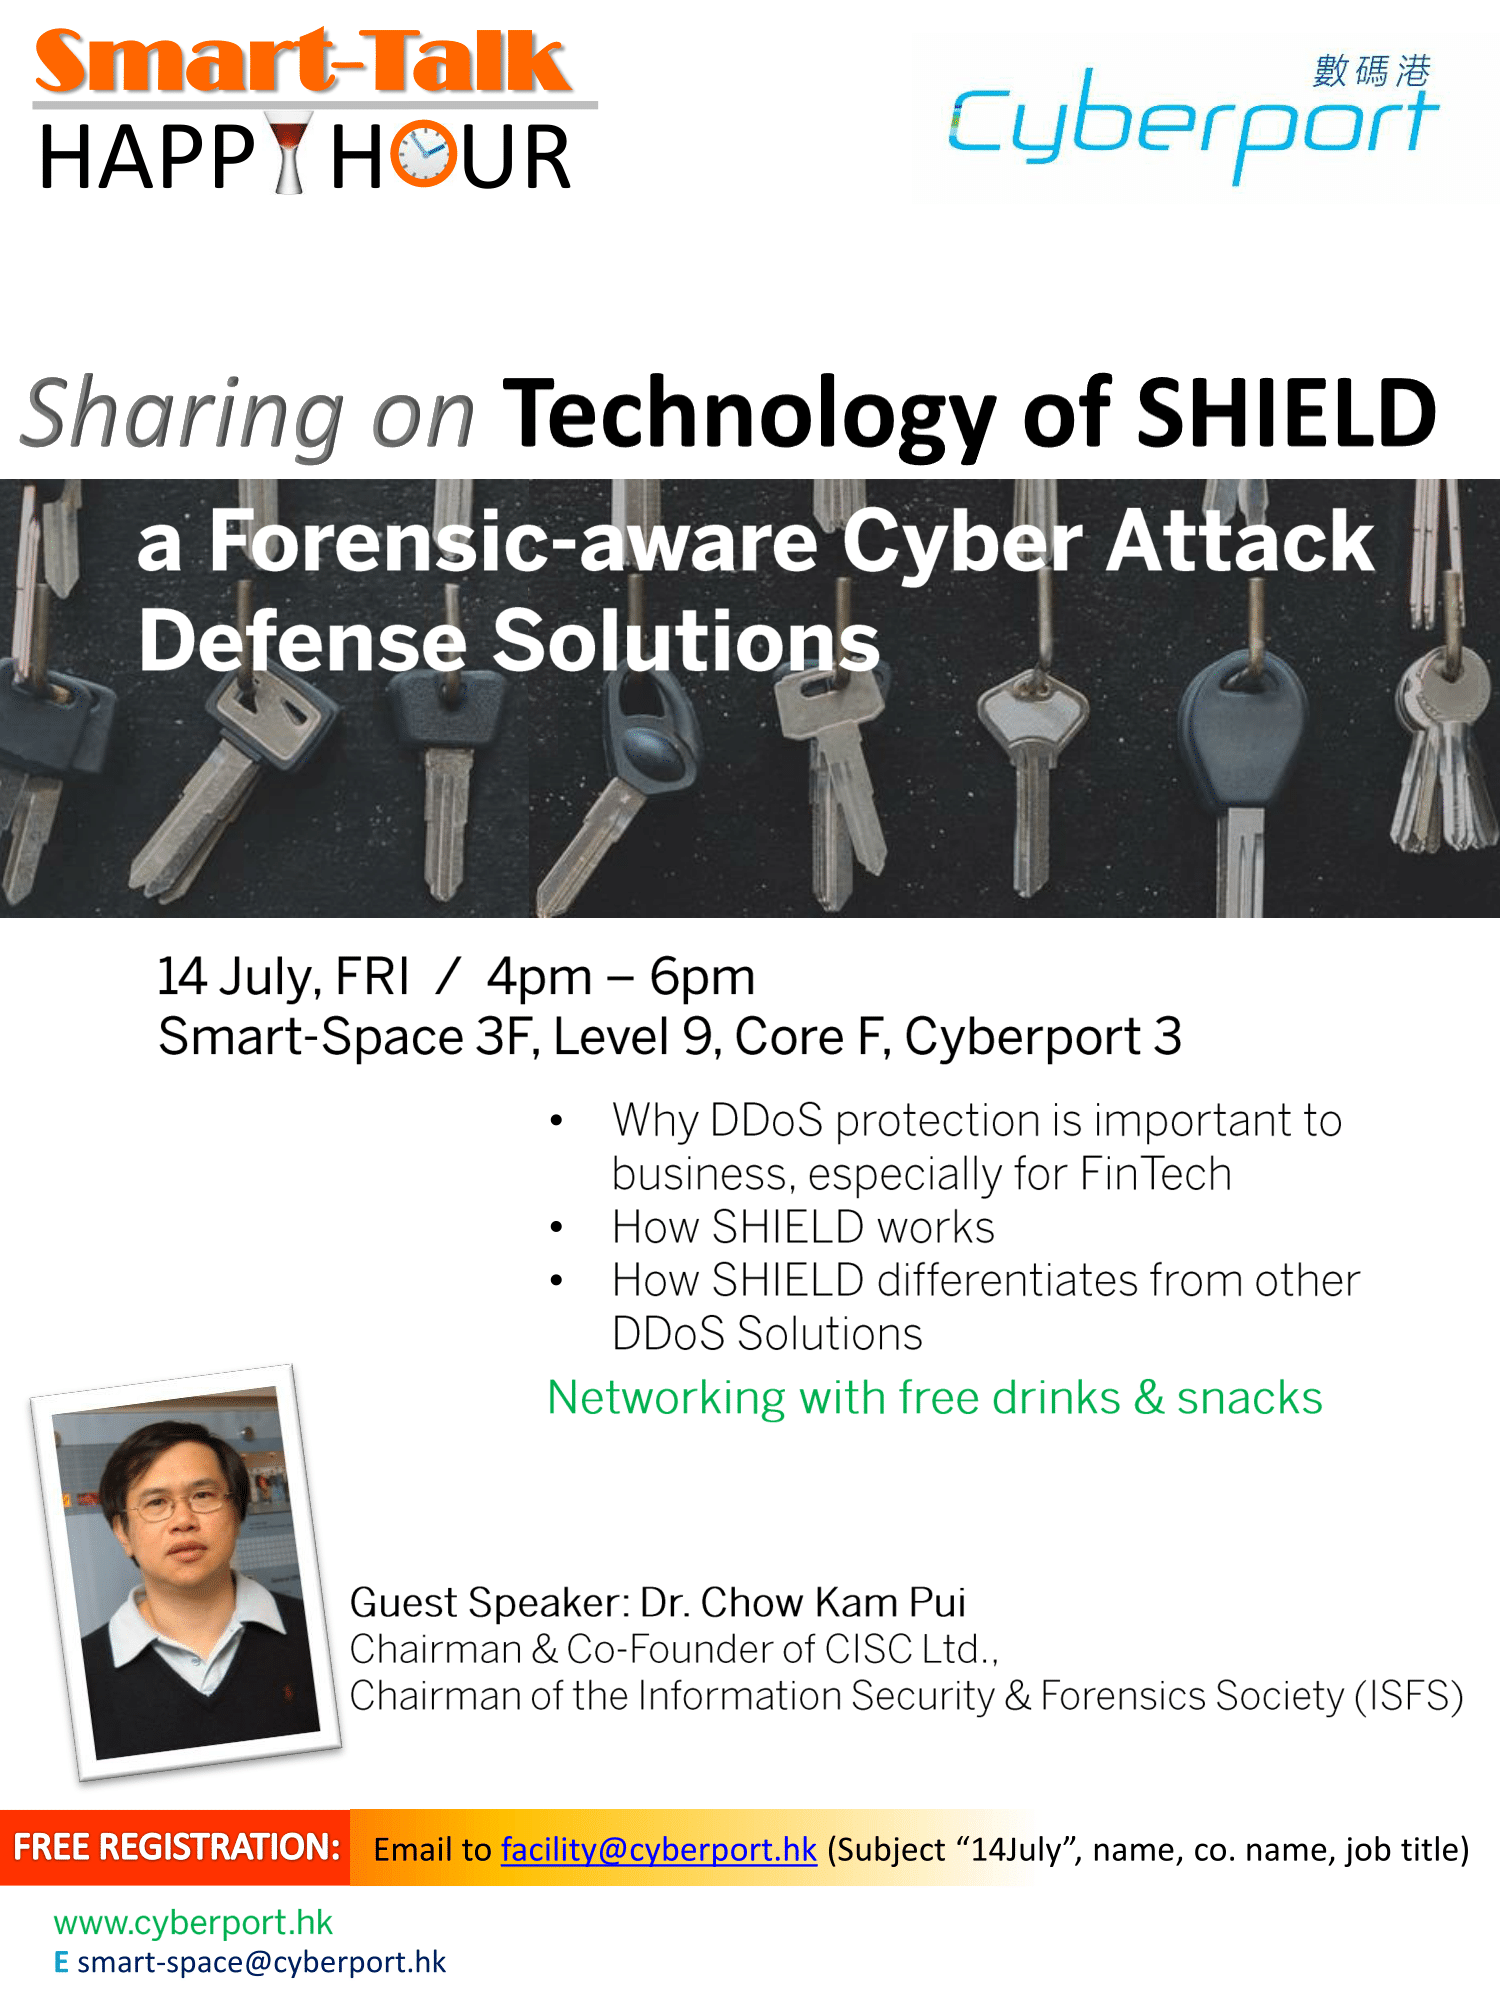 Smart Talk & Happy Hour: Technology of SHIELD - a Forensic-aware Cyber Attack Defense Solutions